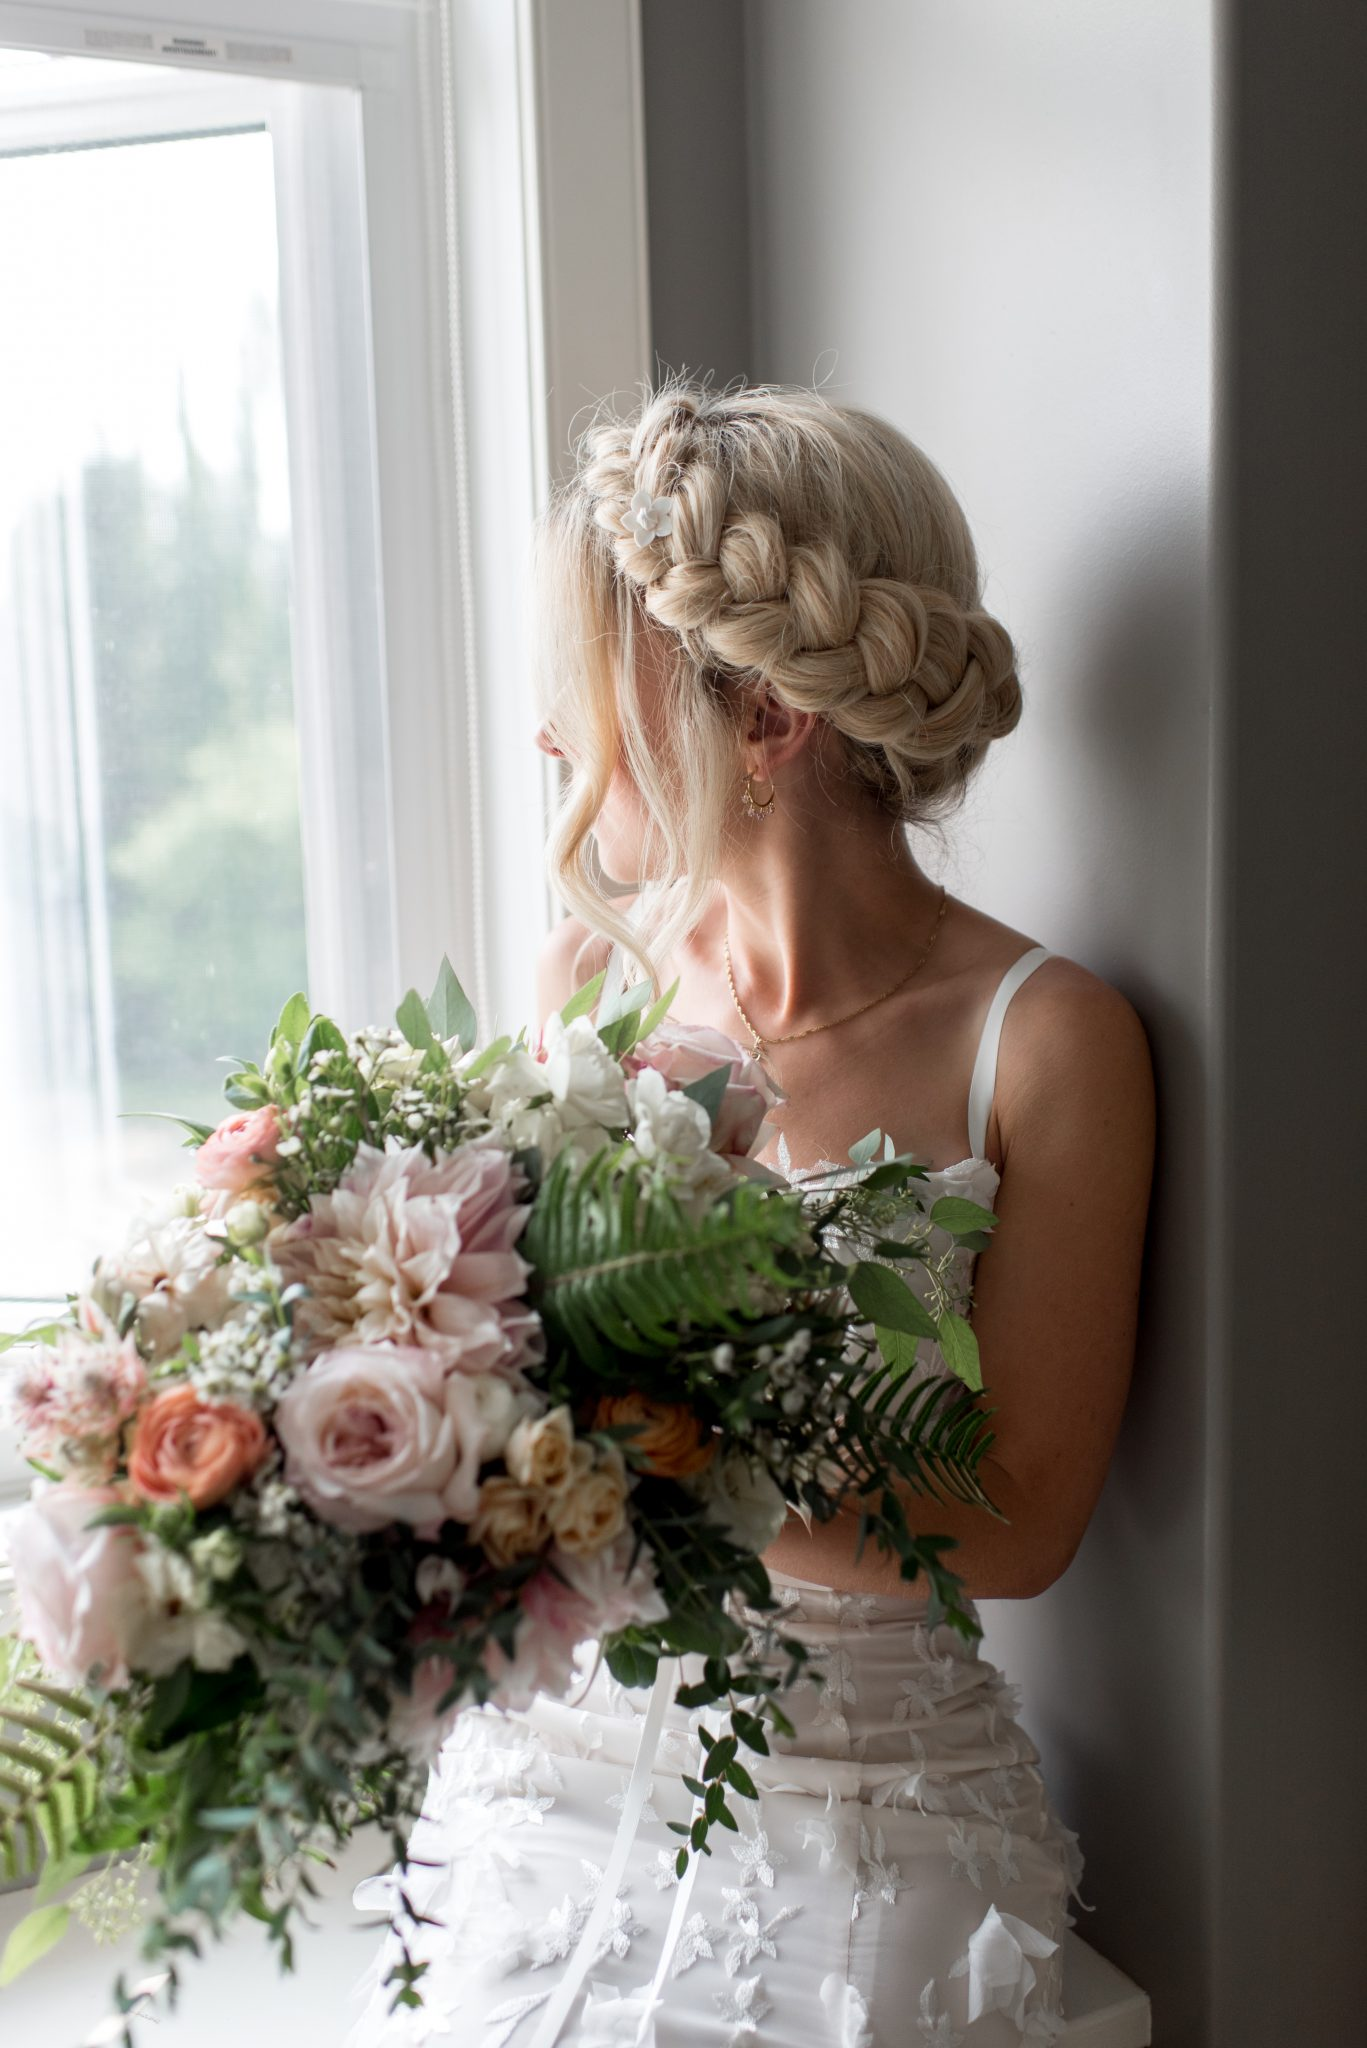 Romantic updo with braids for bridal hair inspiration